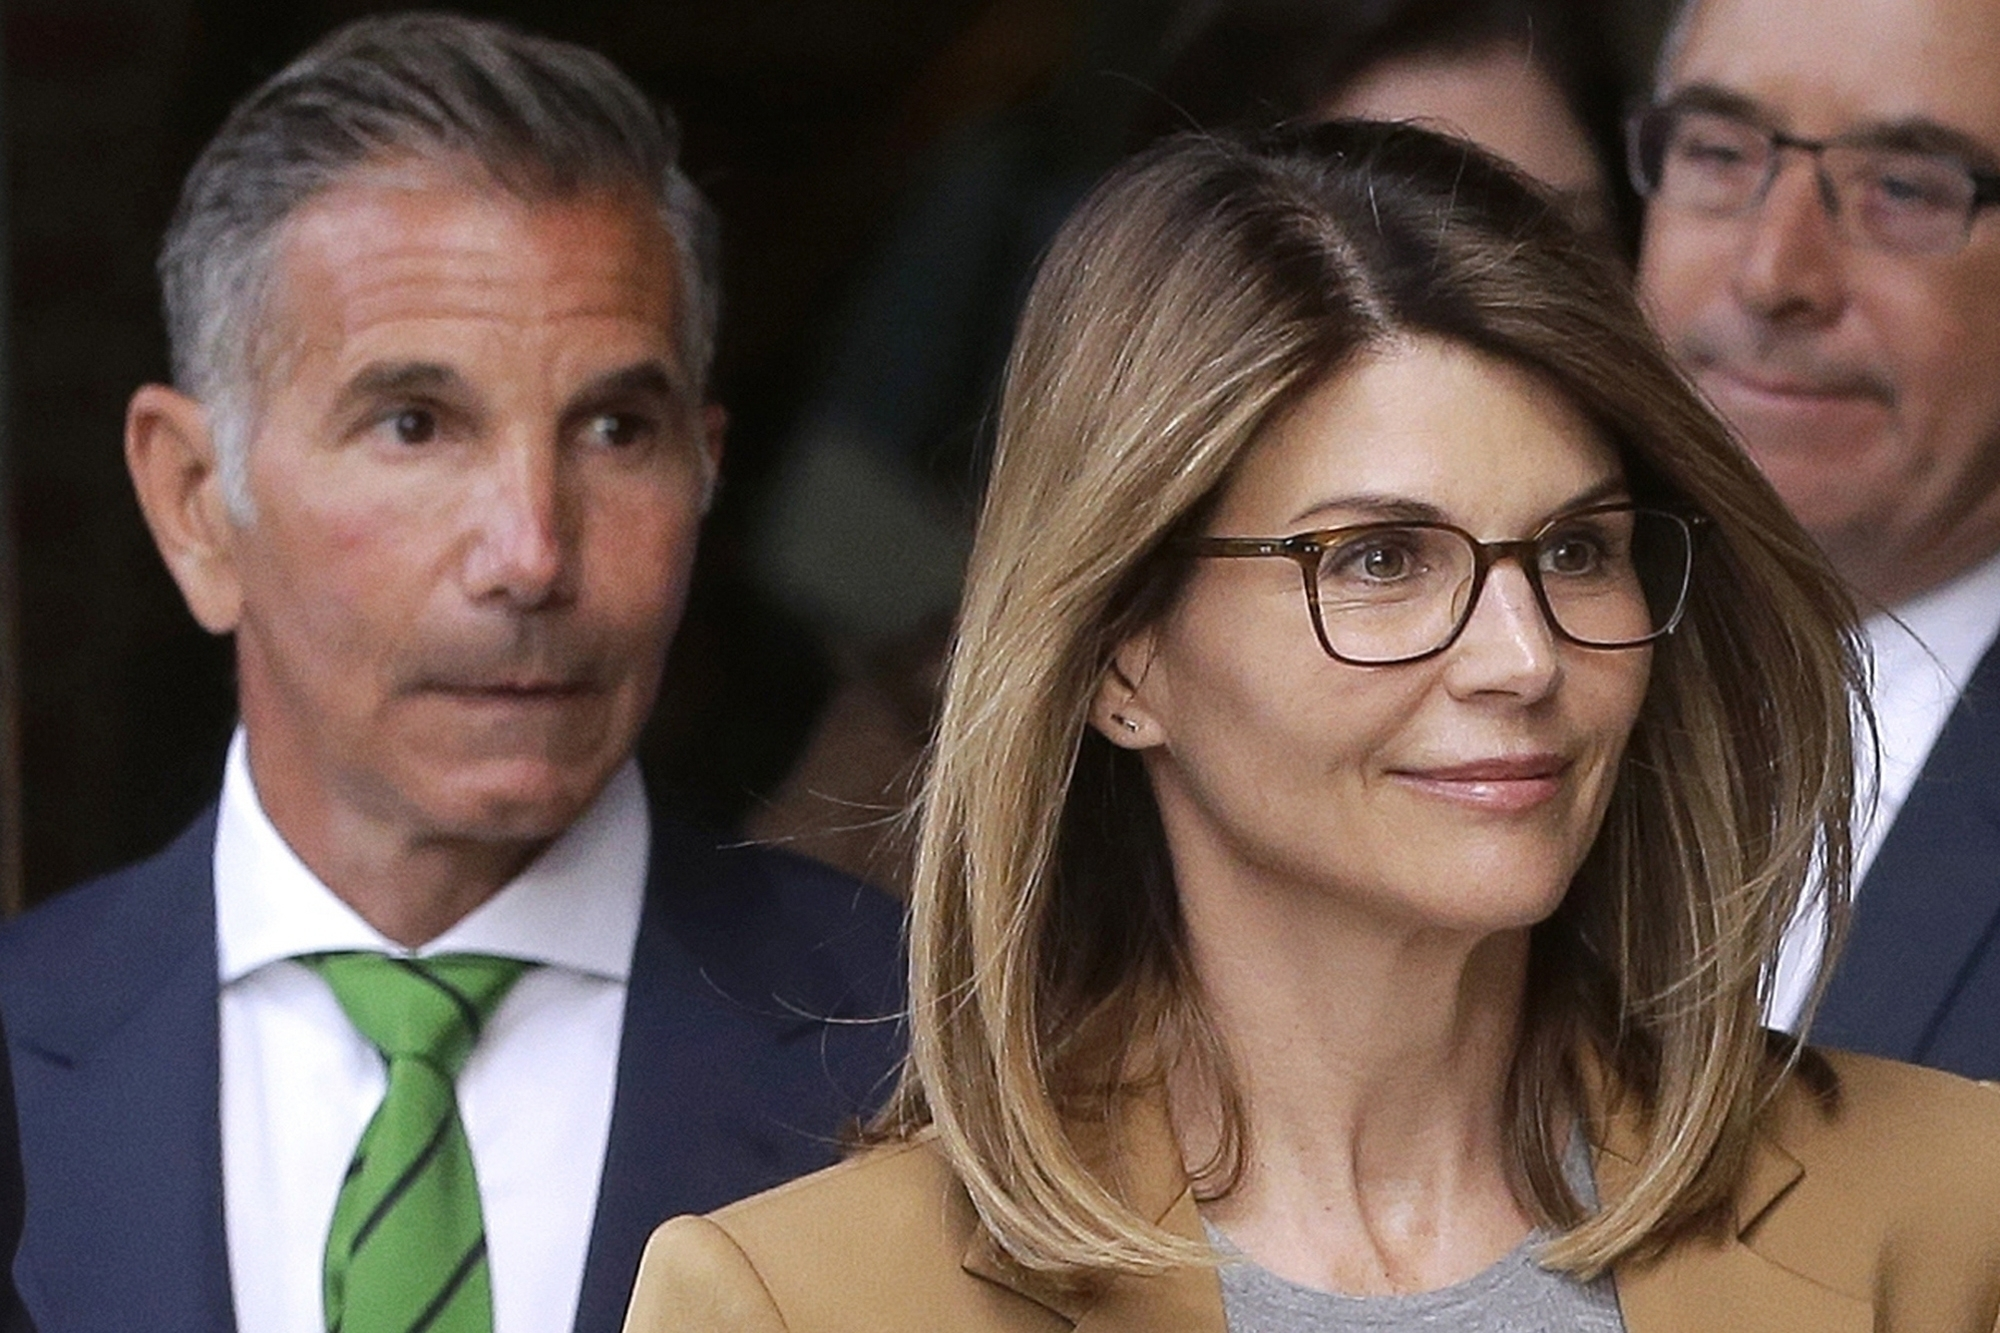 Actress Lori Loughlin, front, and her husband, clothing designer Mossimo Giannulli, left, depart federal court in Boston after a hearing in a nationwide college admissions bribery scandal on April 3, 2019. (AP Photo/Steven Senne, File)